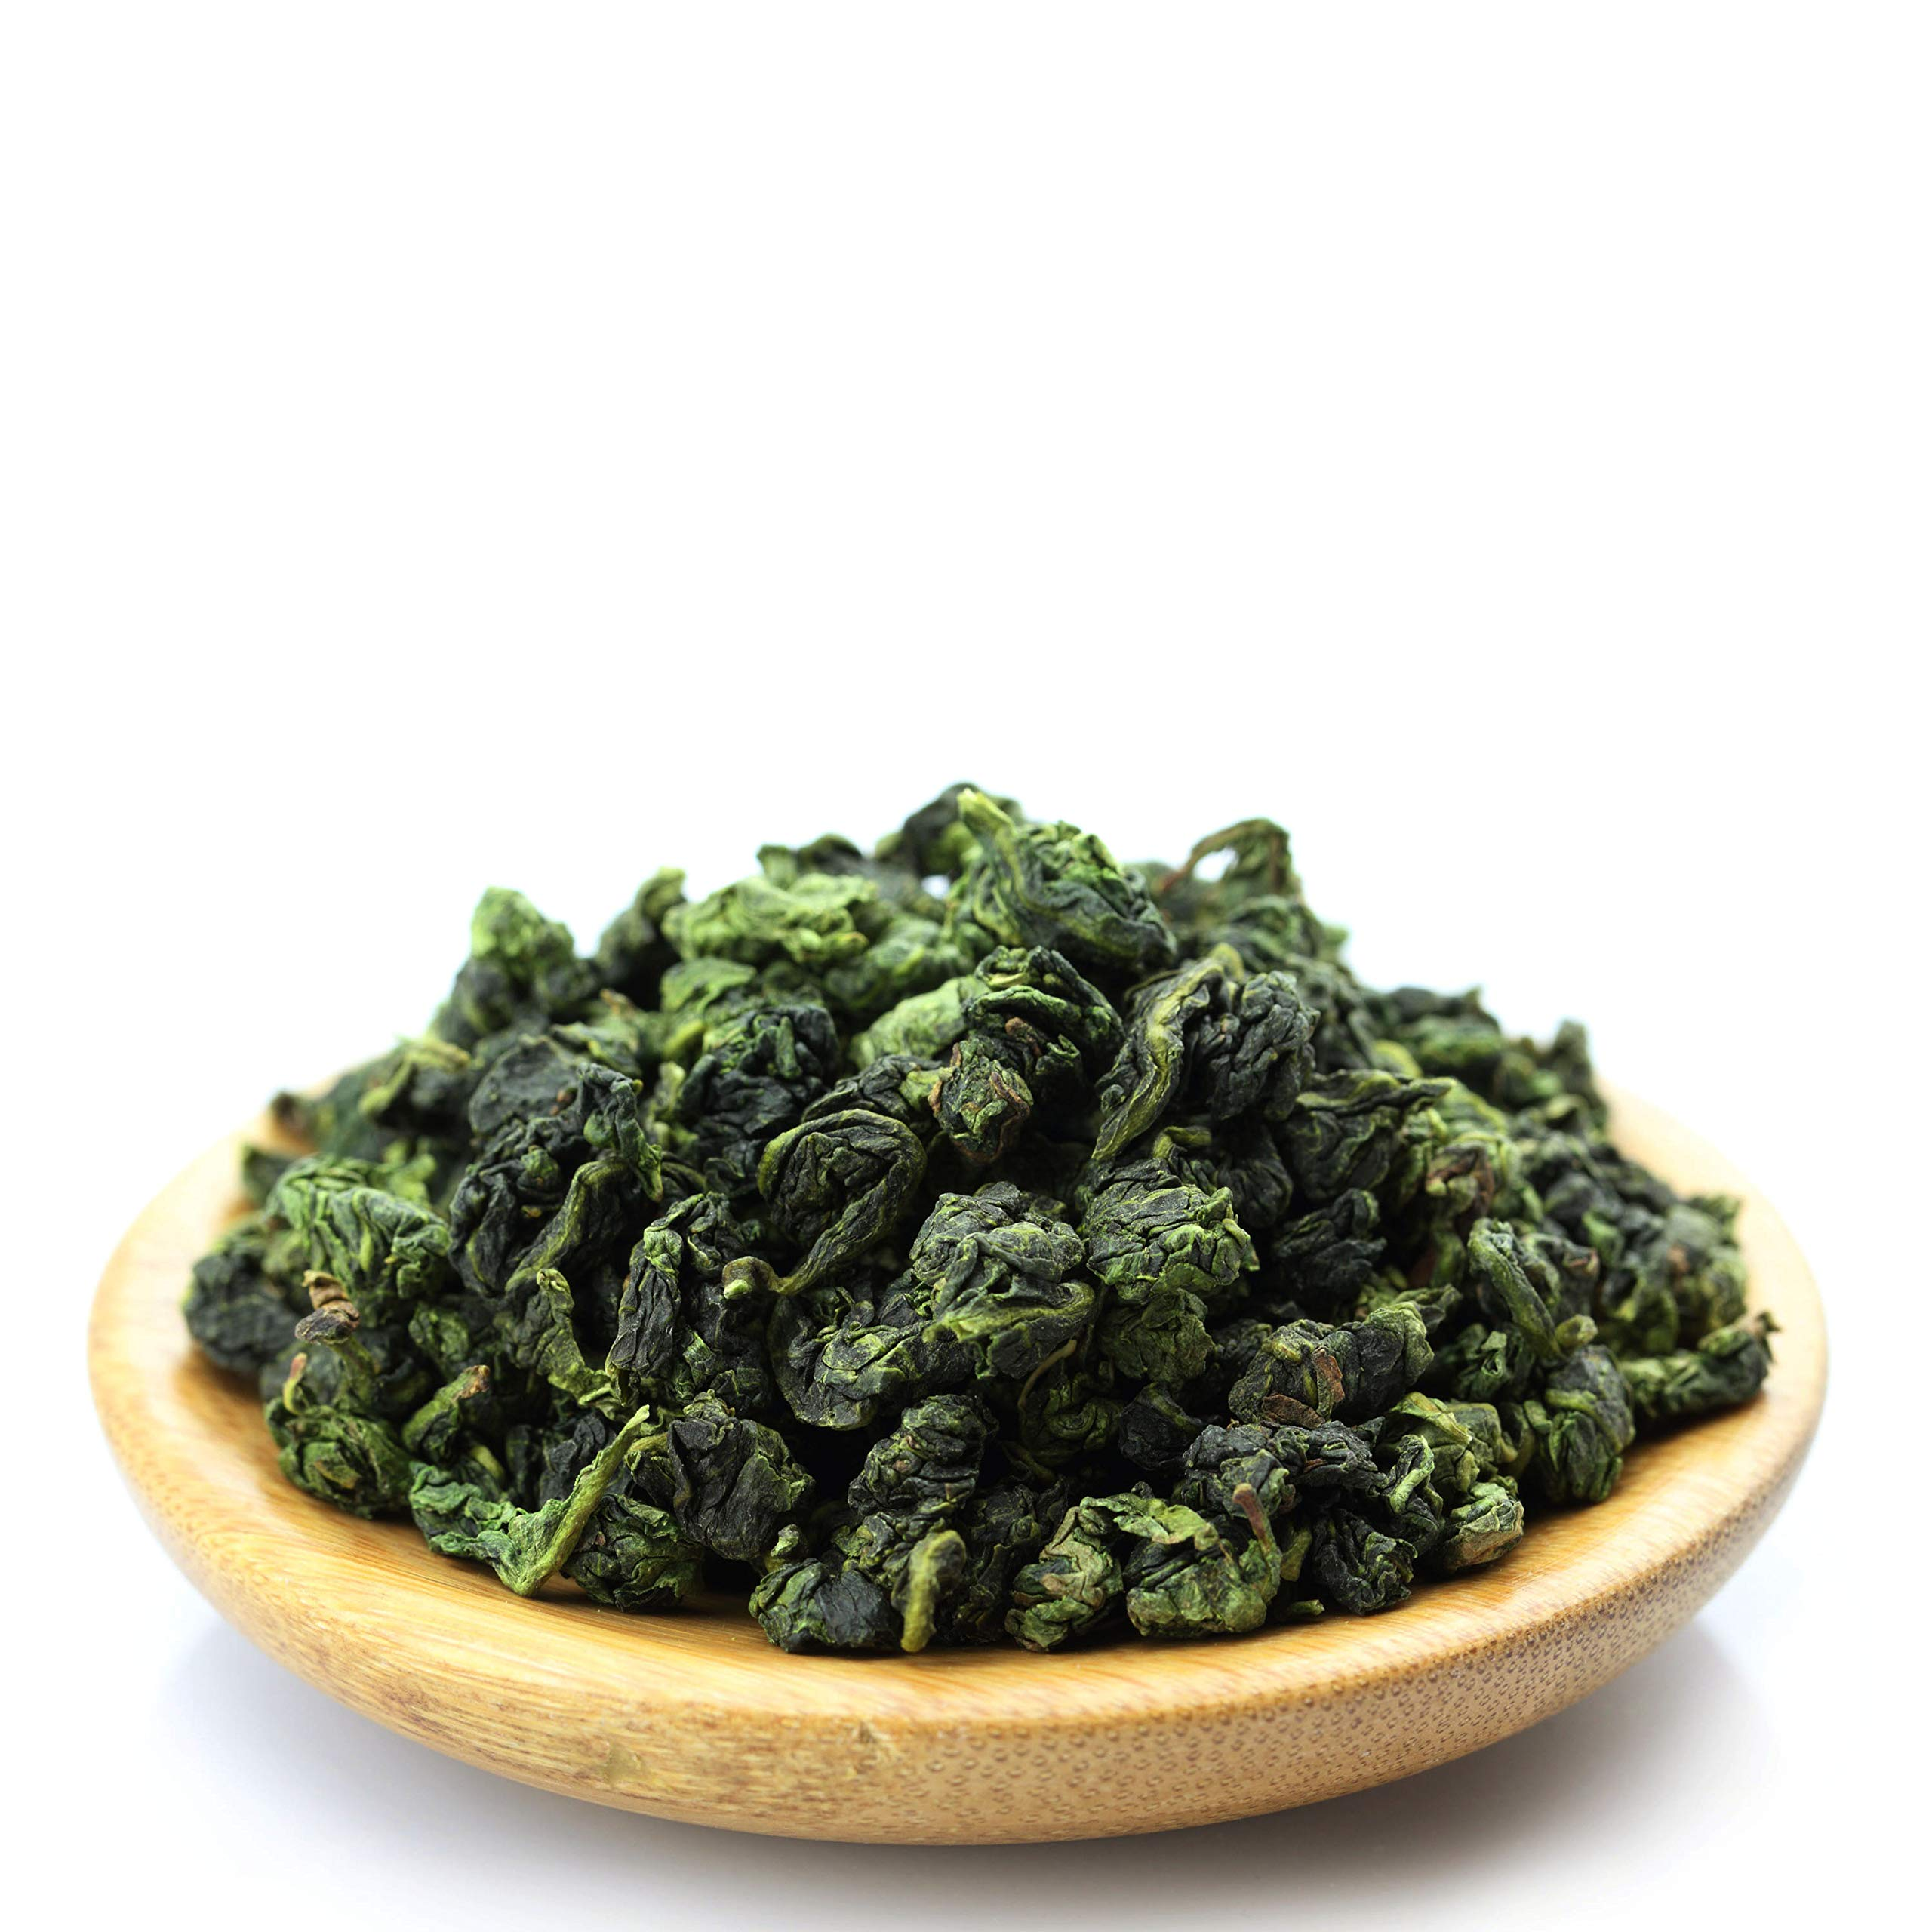 GOARTEA 1000g (35.2 Oz) Organic Supreme Fujian Anxi High Mount. Tie Guan Yin Tieguanyin Iron Goddess Chinese Oolong Tea ON SALE by GOARTEA